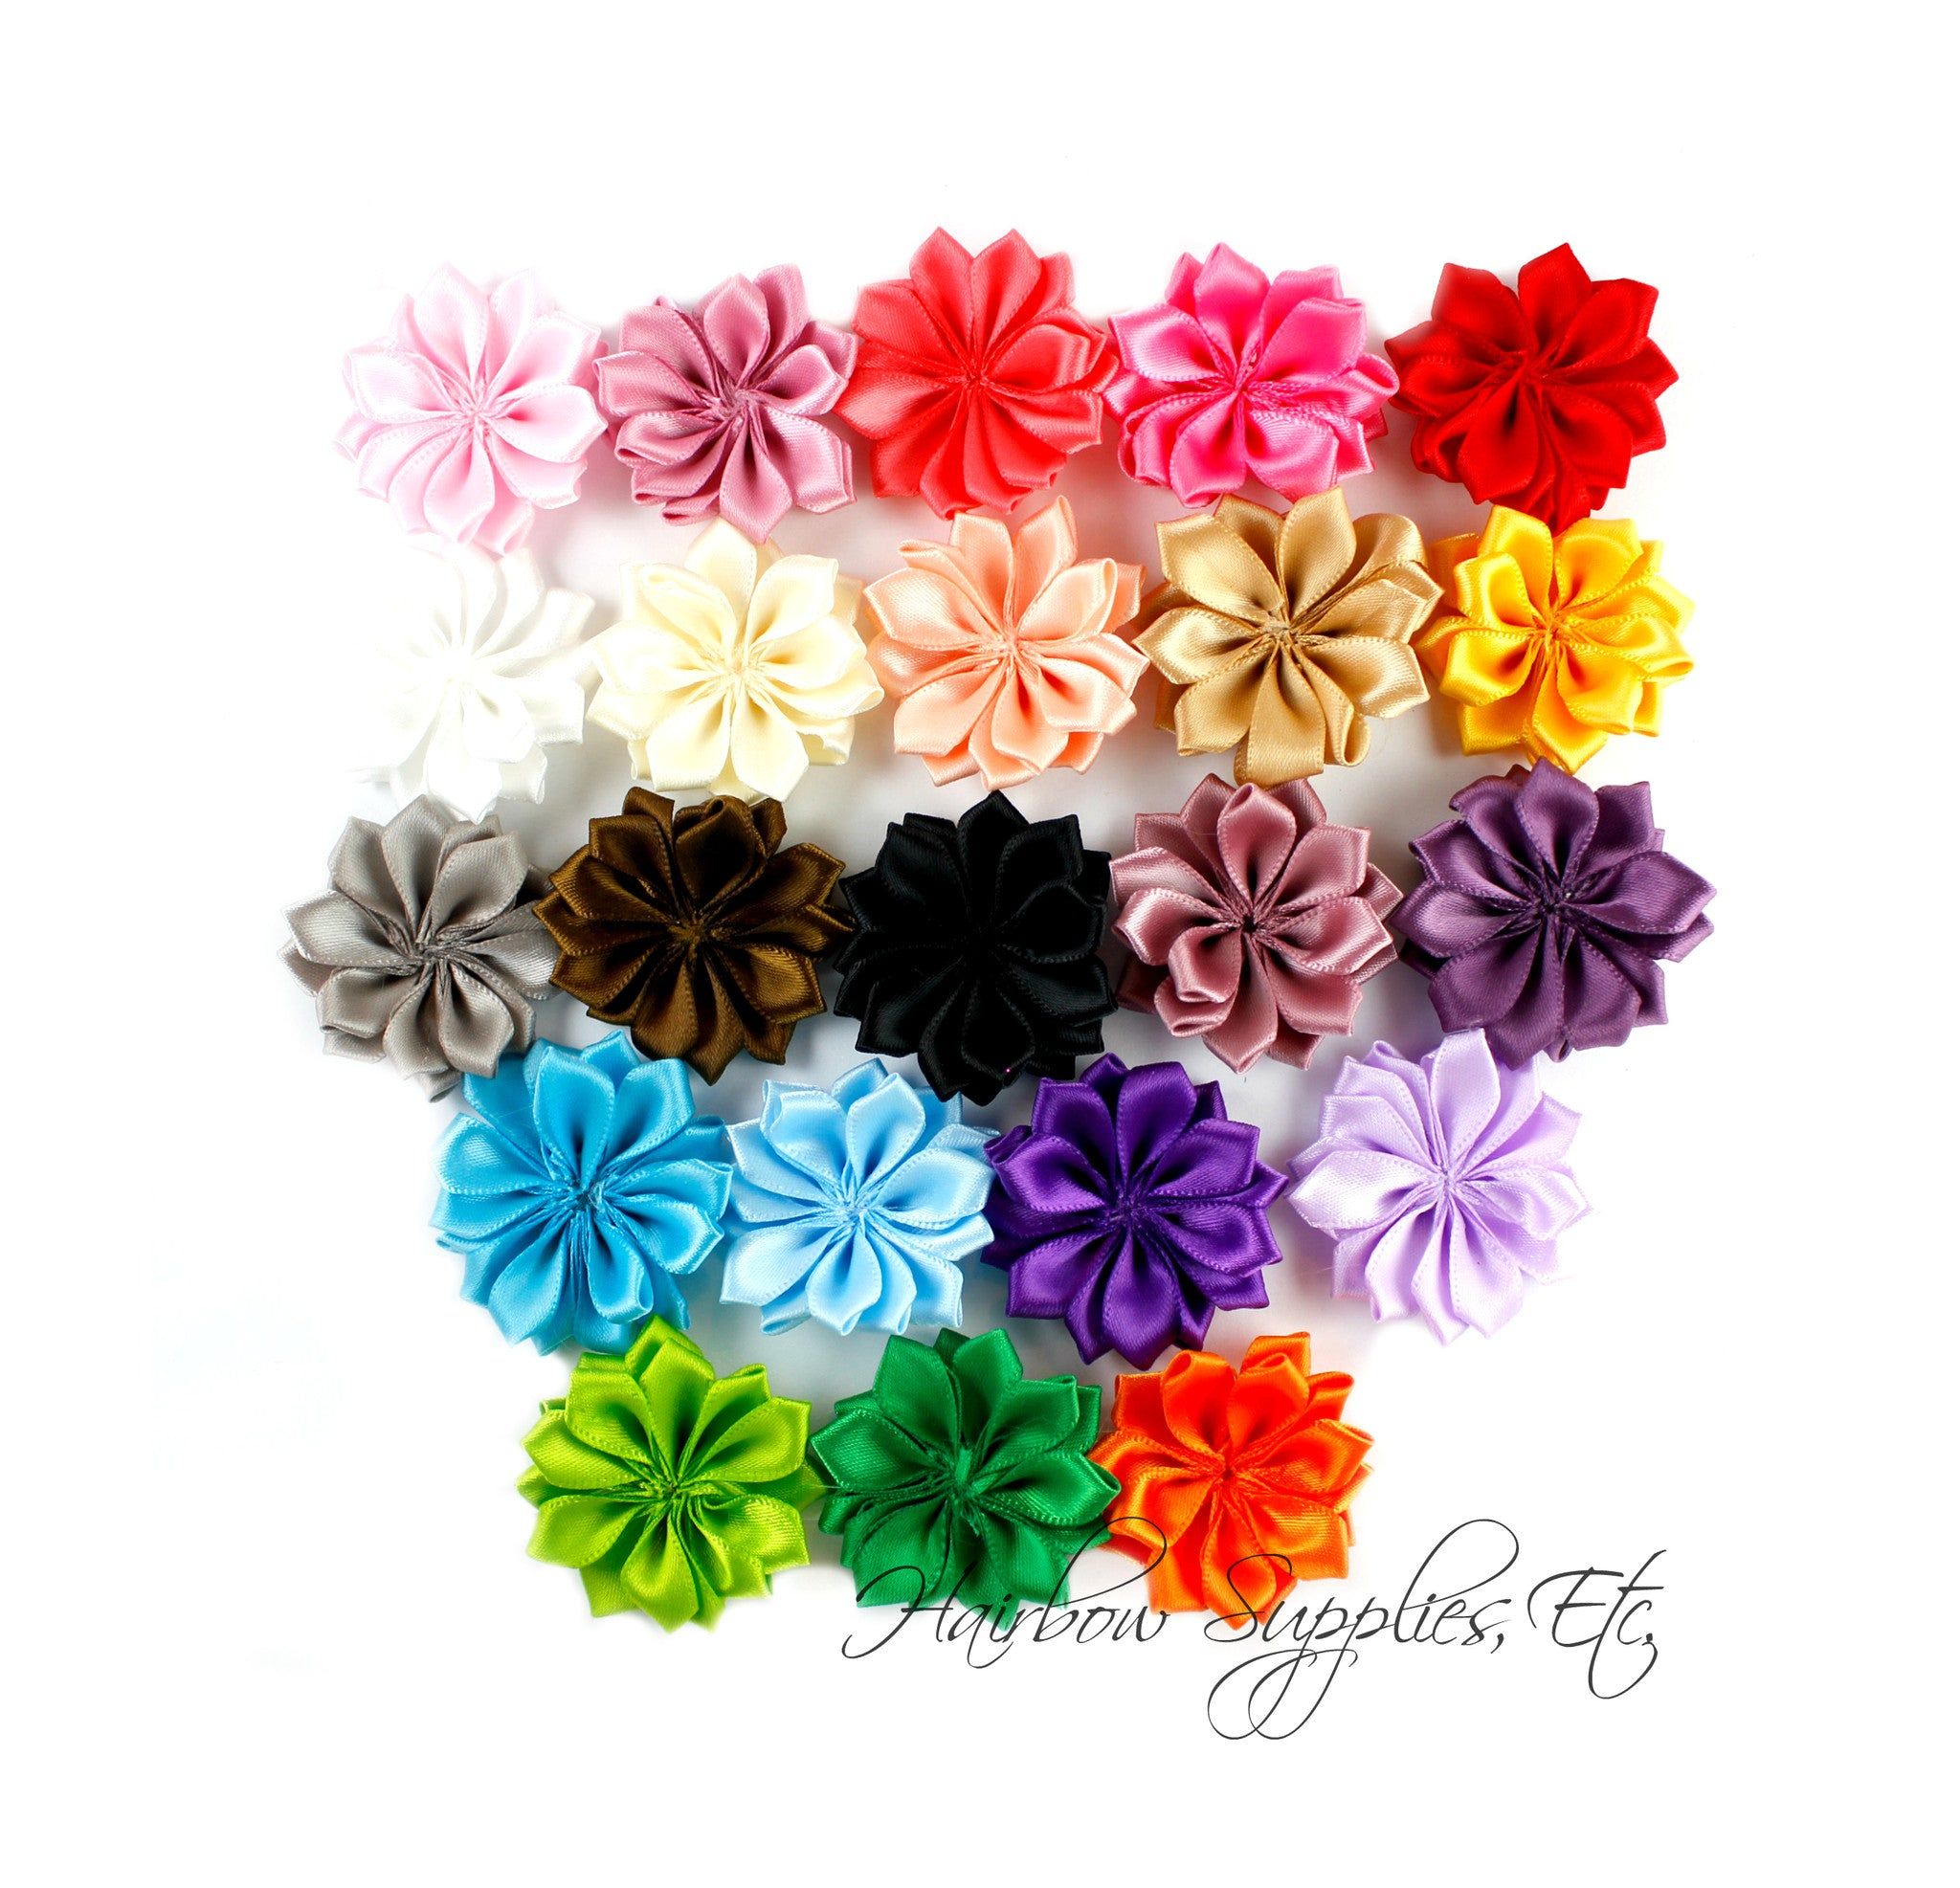 Dainty Star Flowers 1 12 Inch Hairbow Supplies Etc